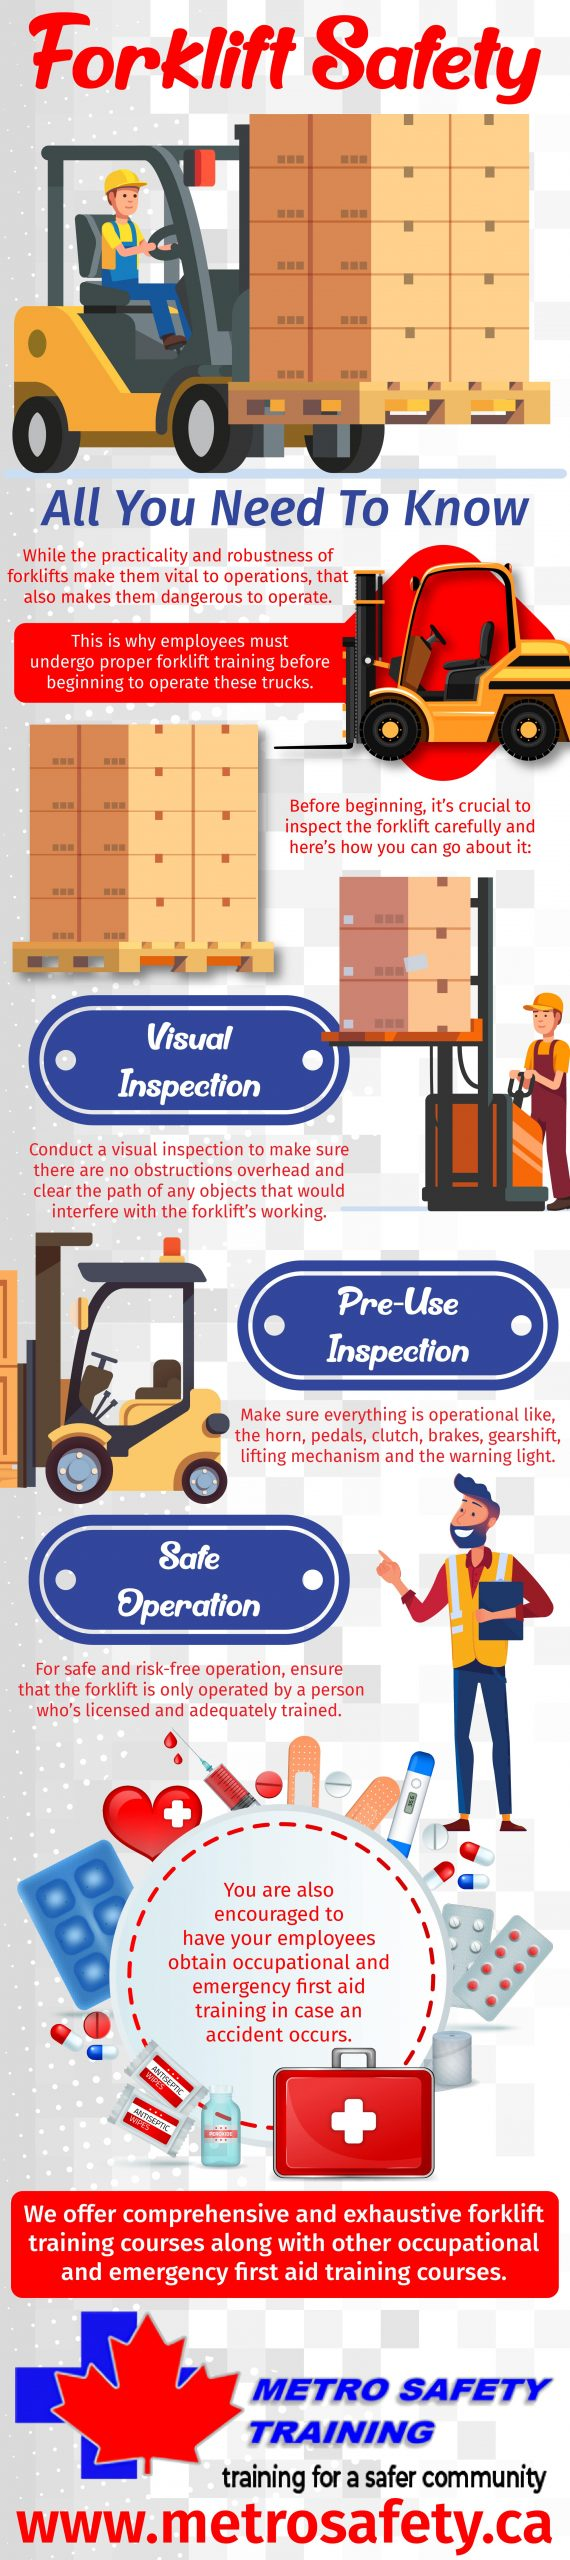 Forklift Training - All you need to know-min